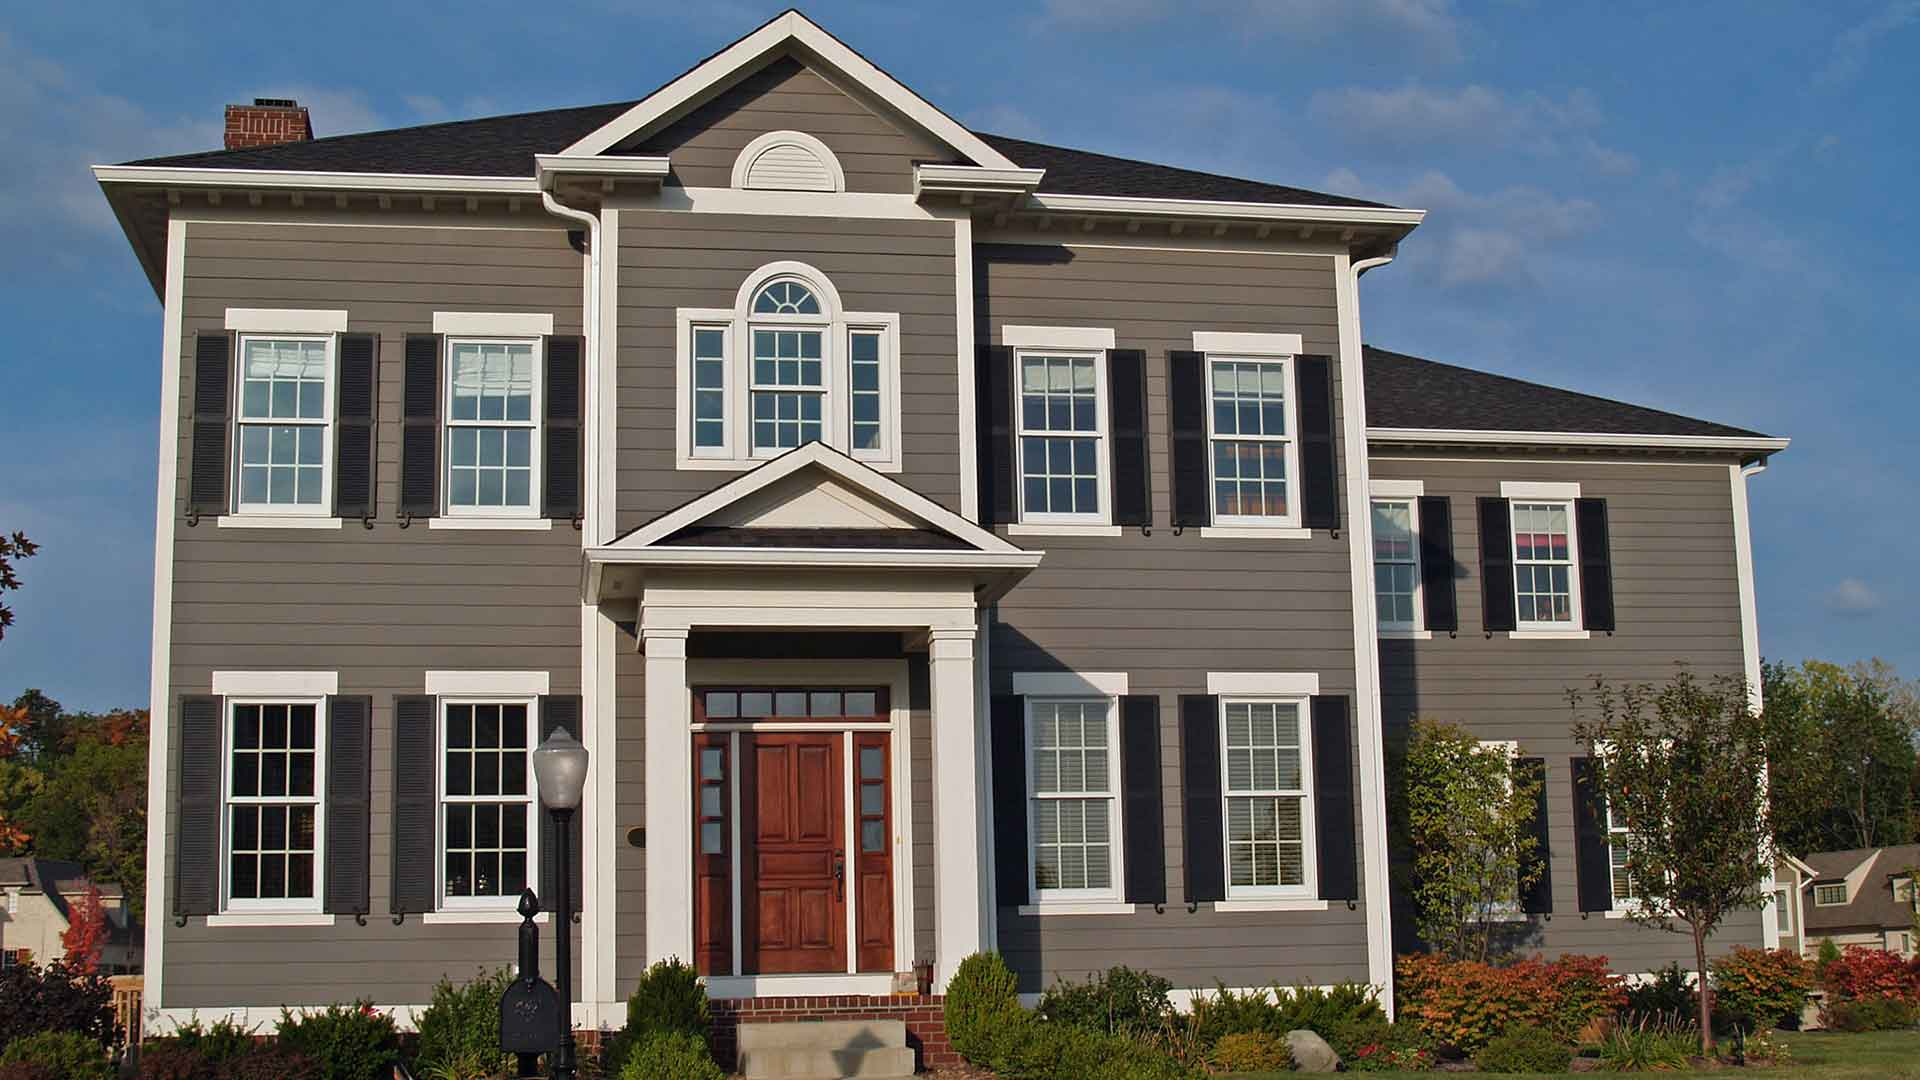 Vinyl Siding Is Not Only Easy on the Eyes, it is Easy to Maintain